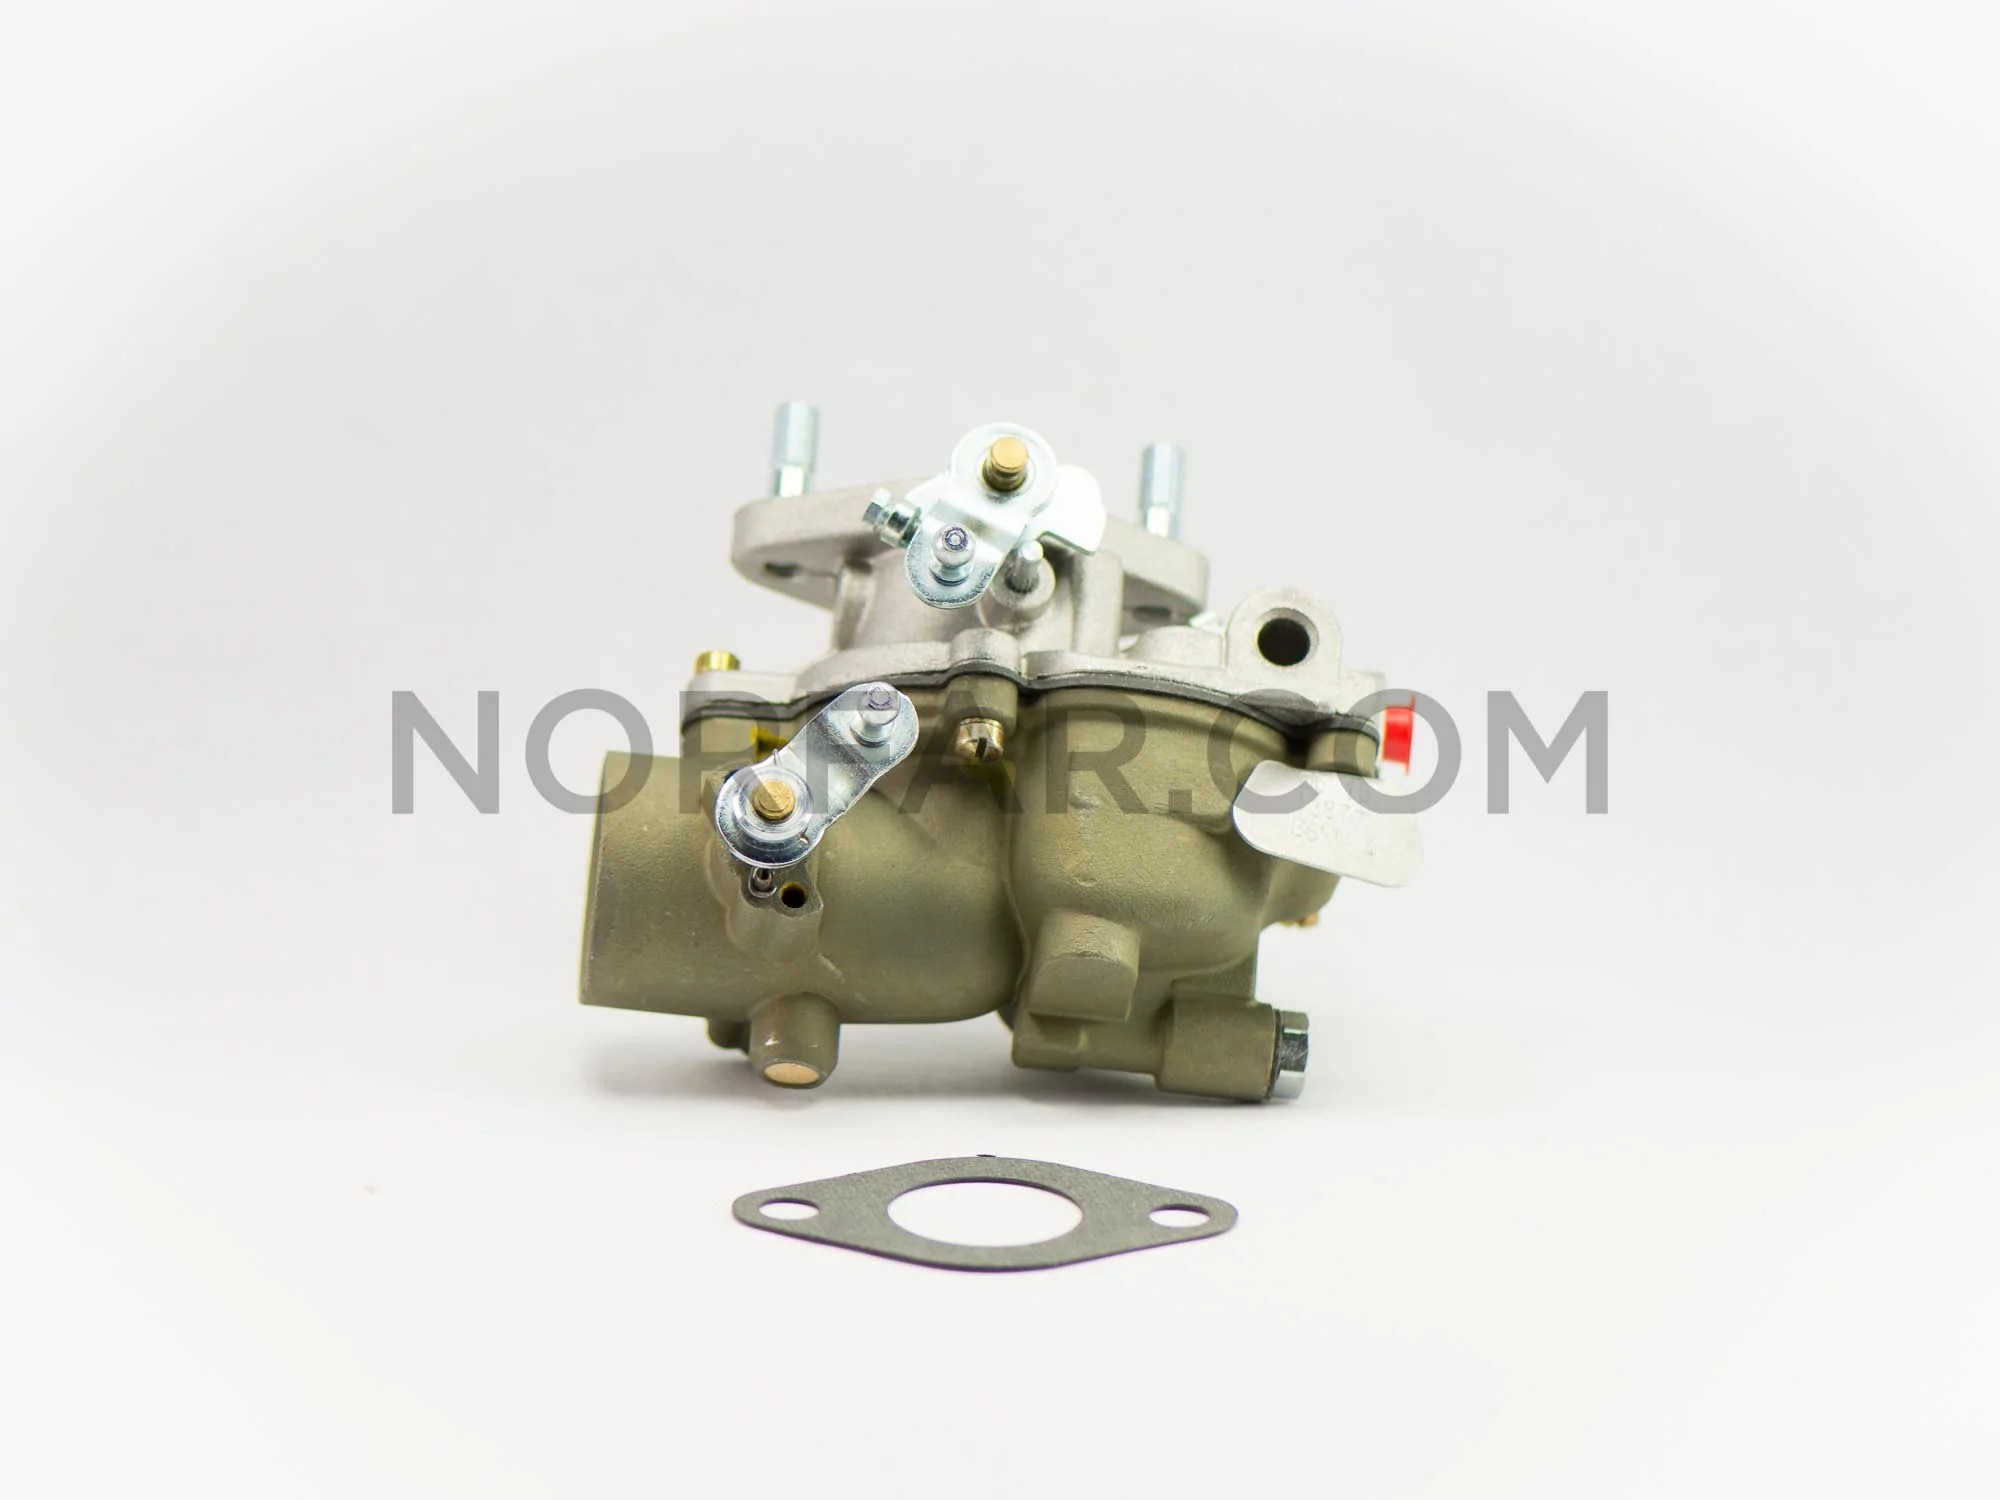 medium resolution of zenith 13877 carburetor ford b6nn9510 a norfar com farmall super h carburetor diagram zenith 13877 carburetor